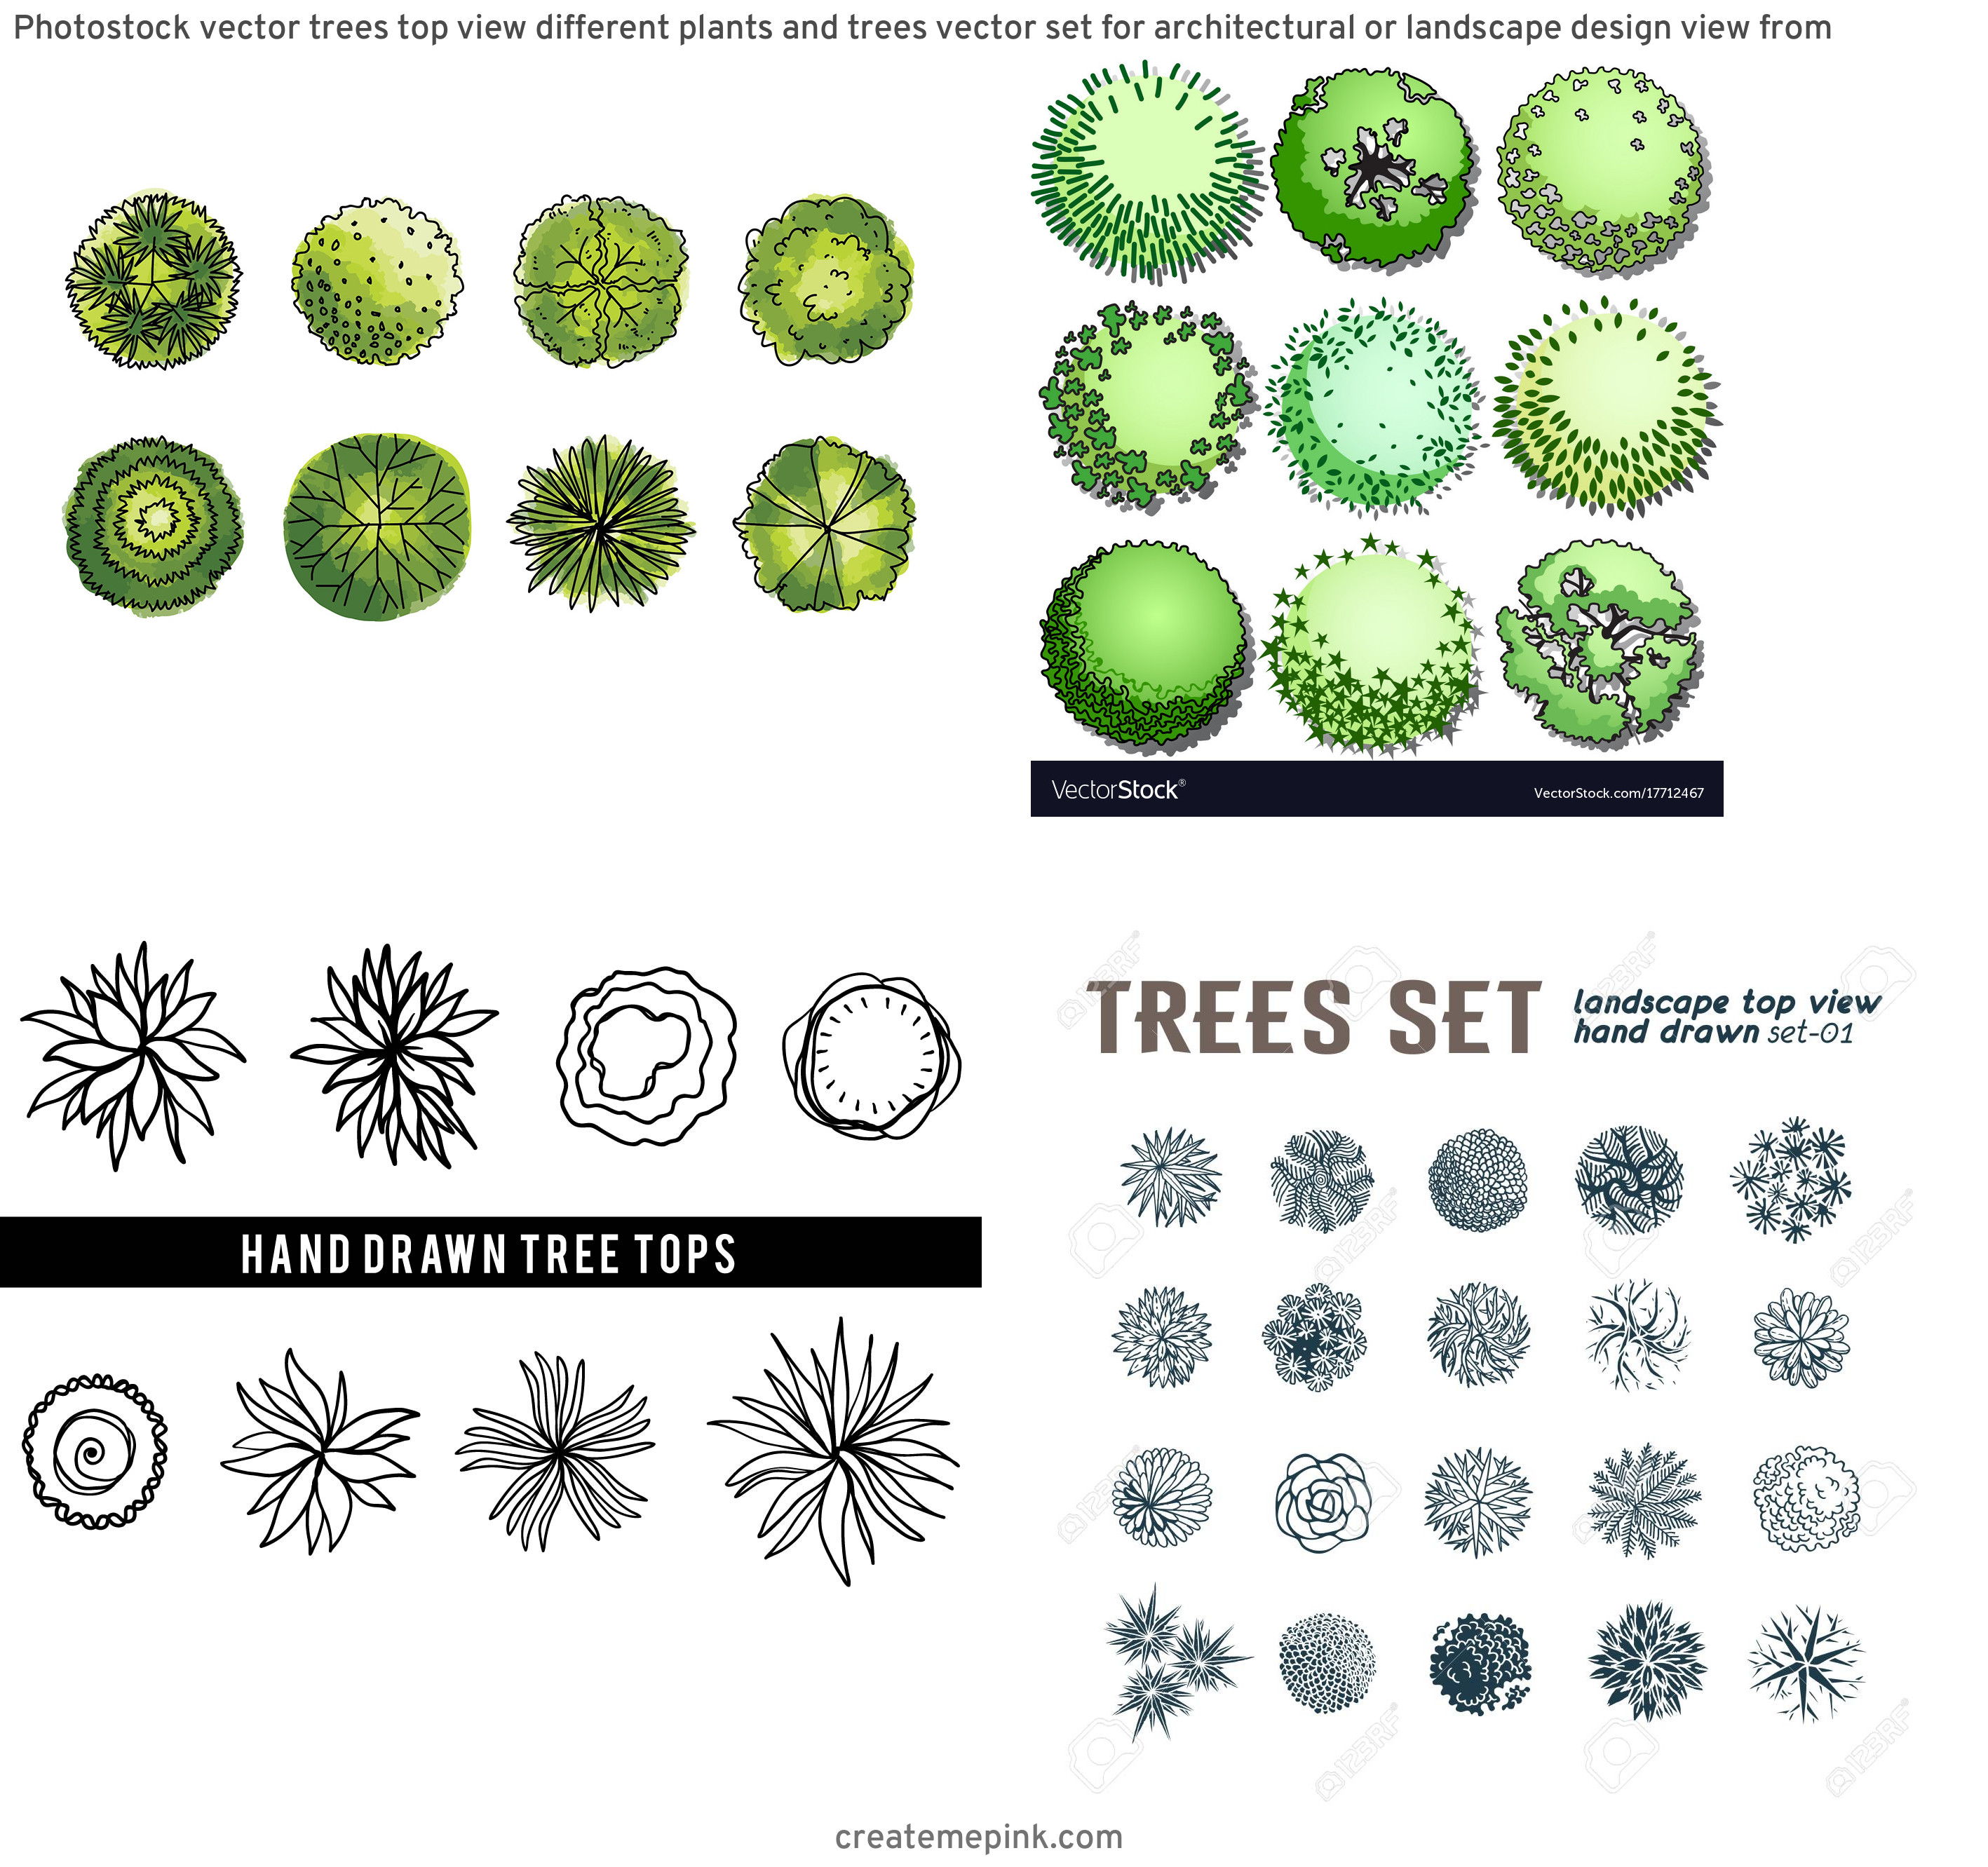 Drawn Free Vector Tree Tops: Photostock Vector Trees Top View Different Plants And Trees Vector Set For Architectural Or Landscape Design View From